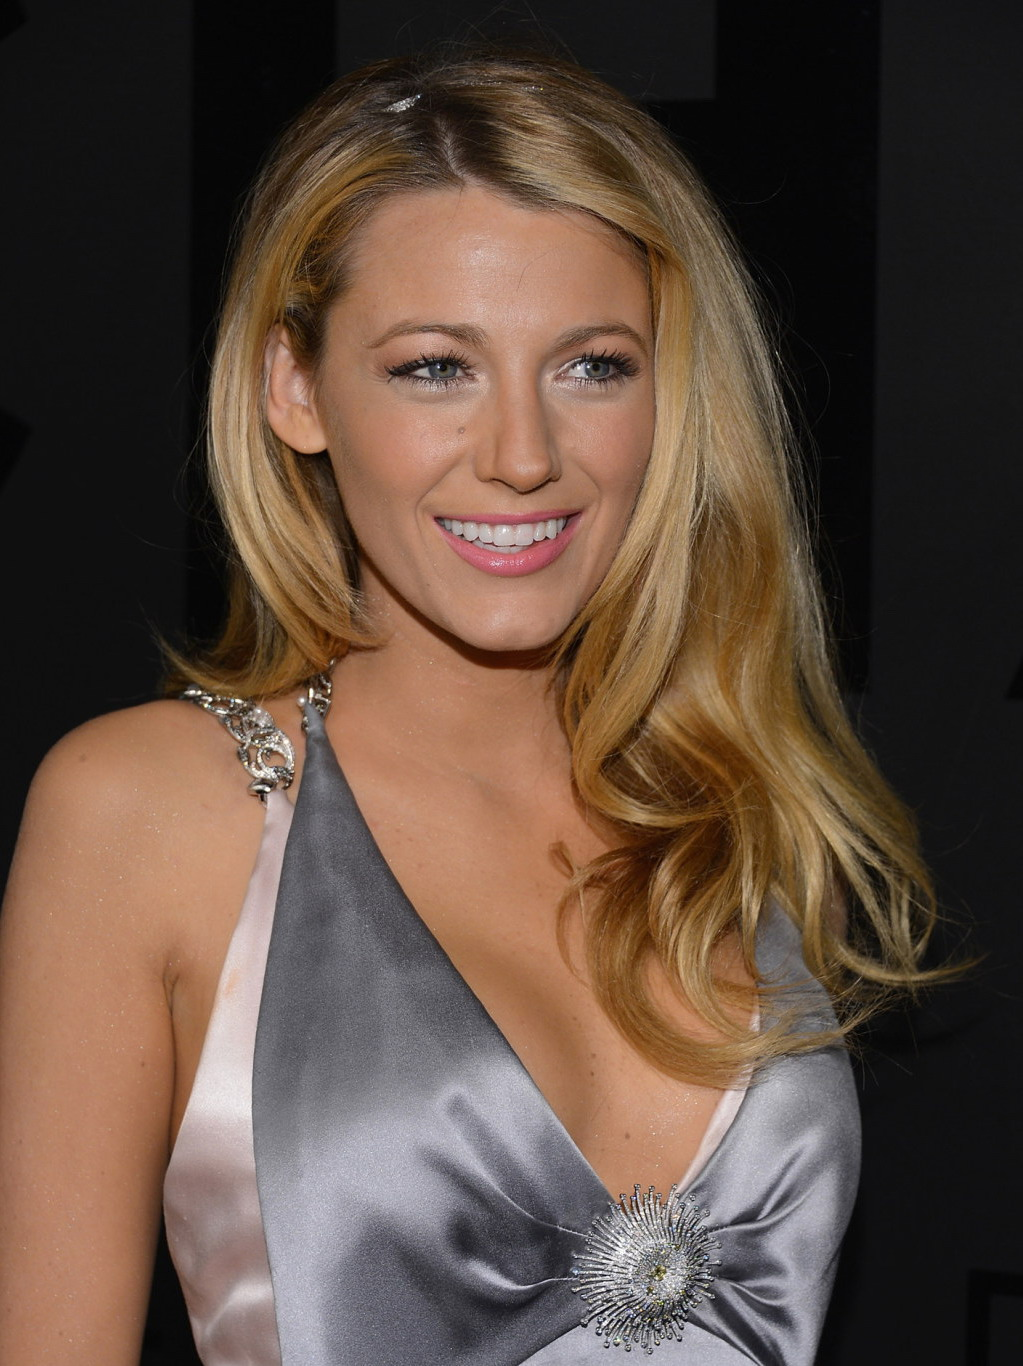 Blake Lively Cleavage 05 Gotceleb